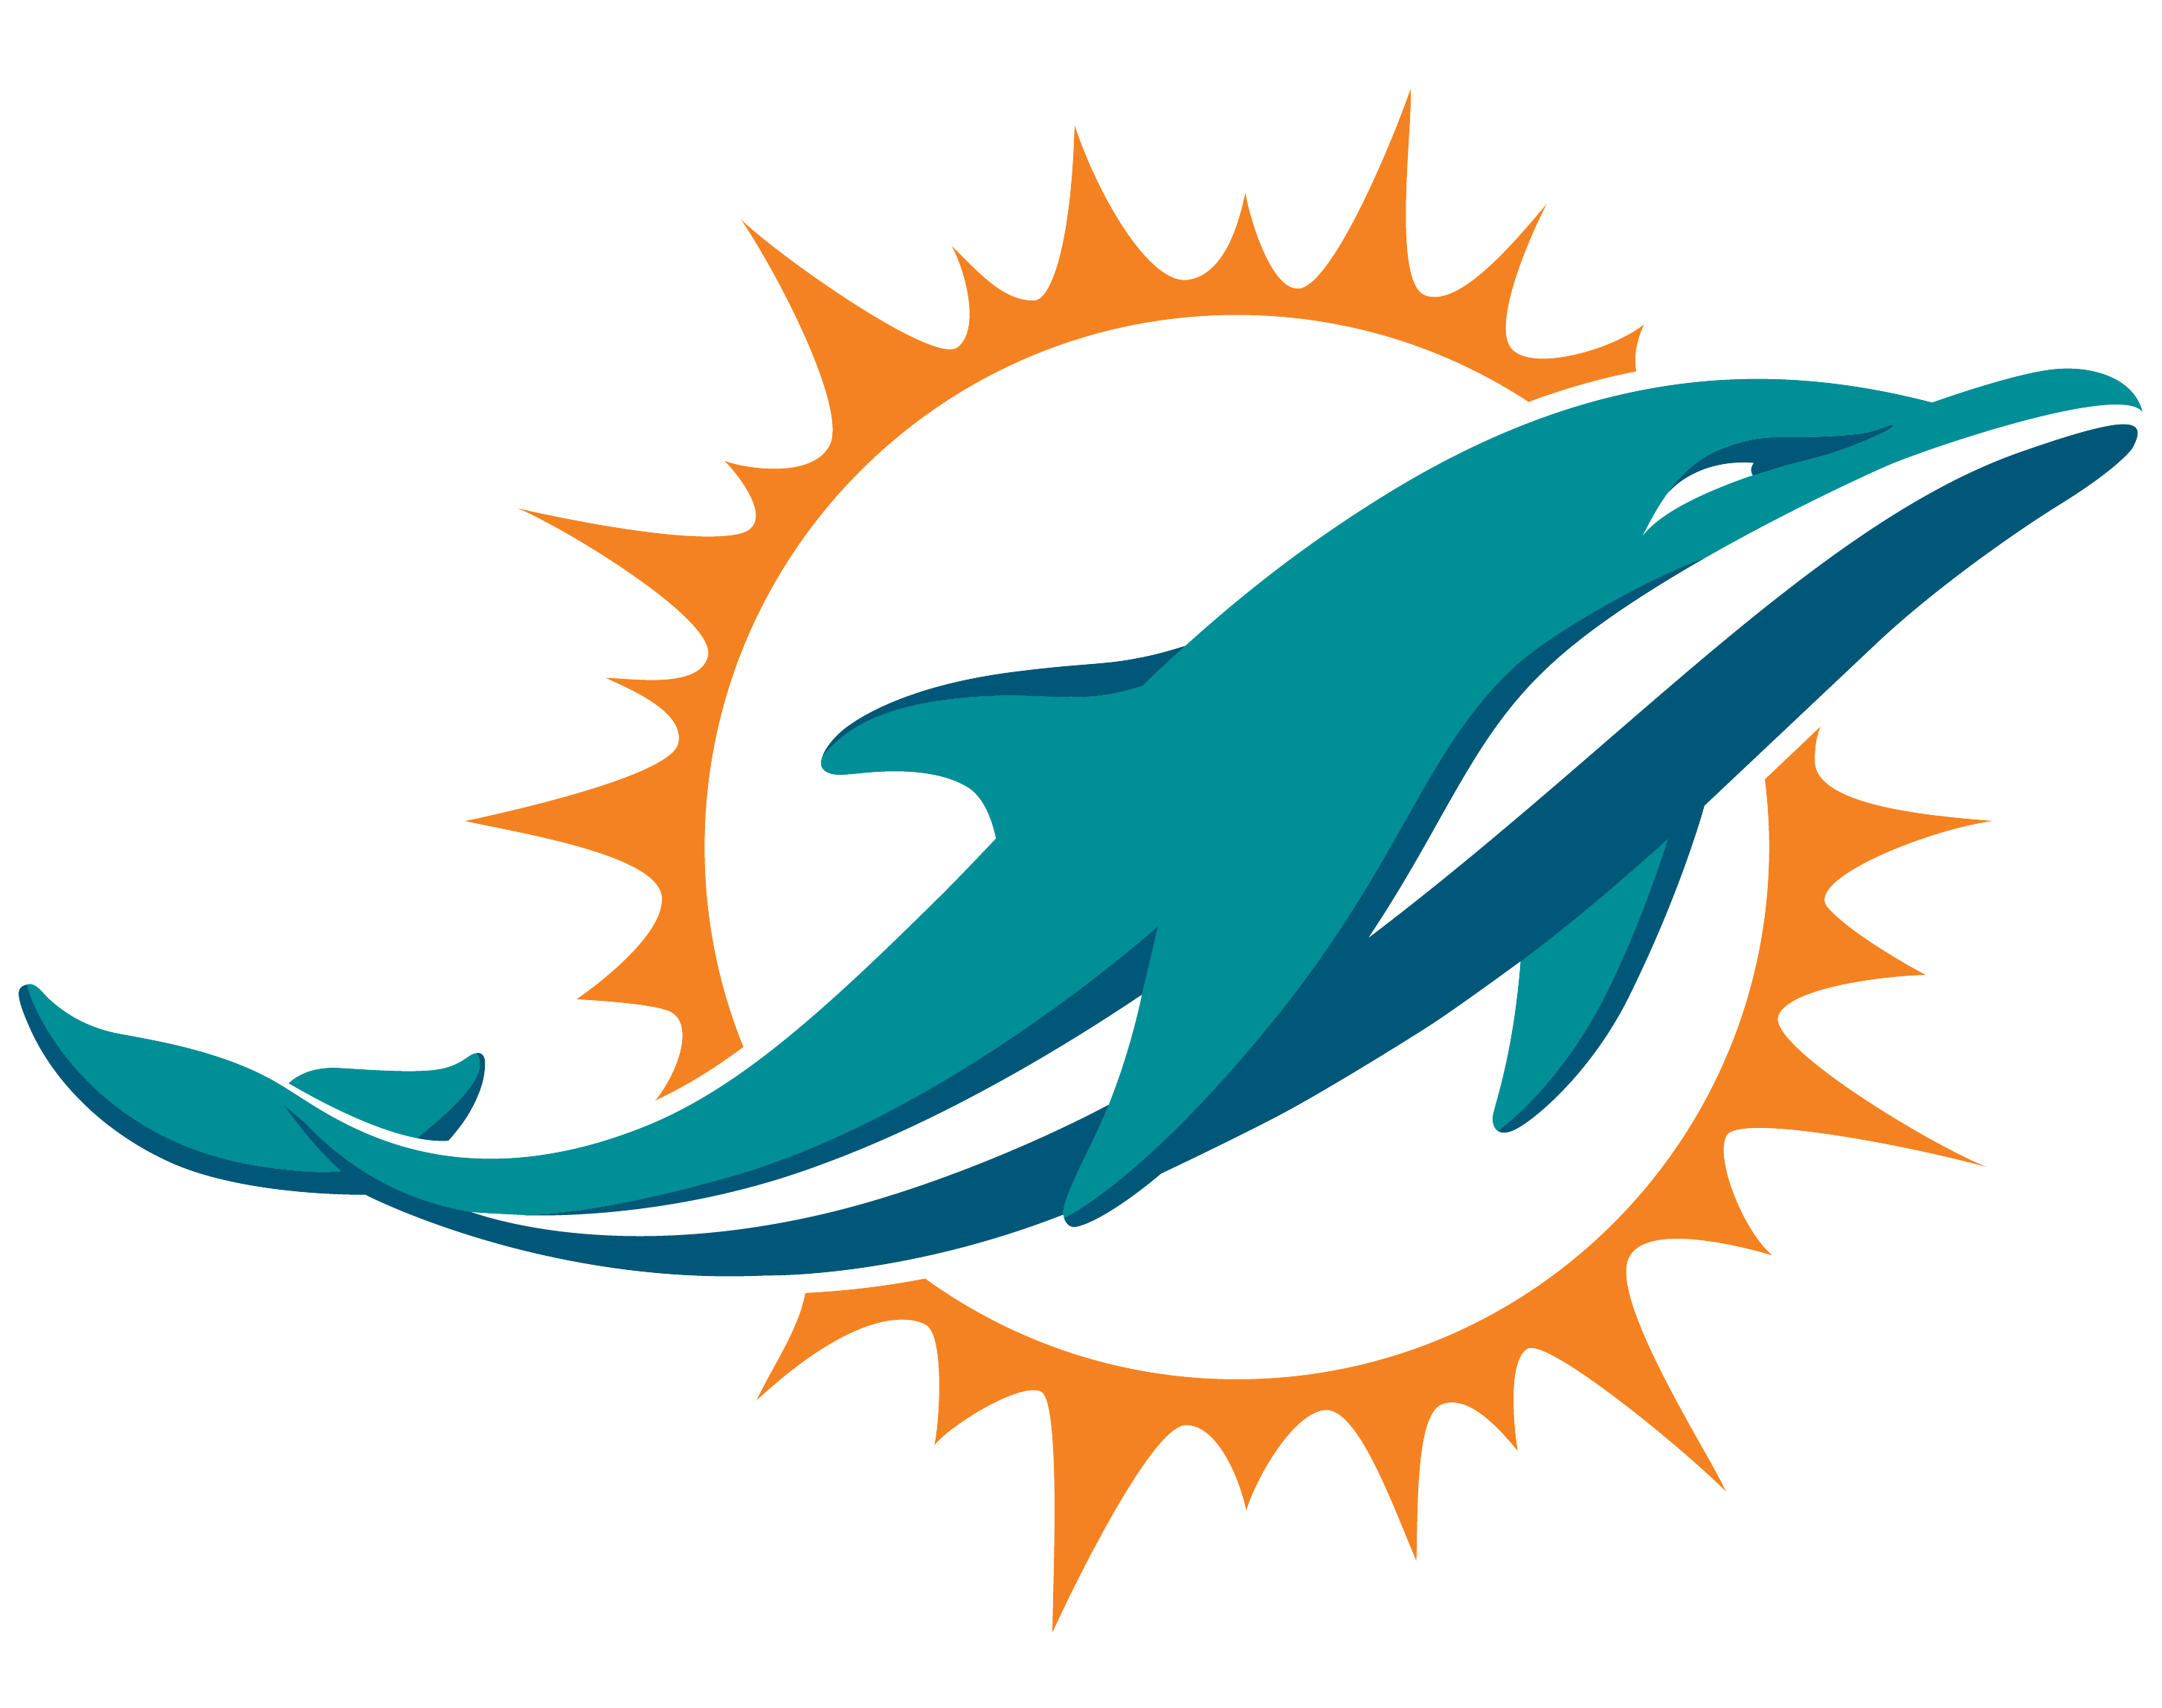 Oittsburgh stweler thanksgiving clipart banner black and white library 2018 Miami Dolphins! - | Pinterest | Dolphin app banner black and white library